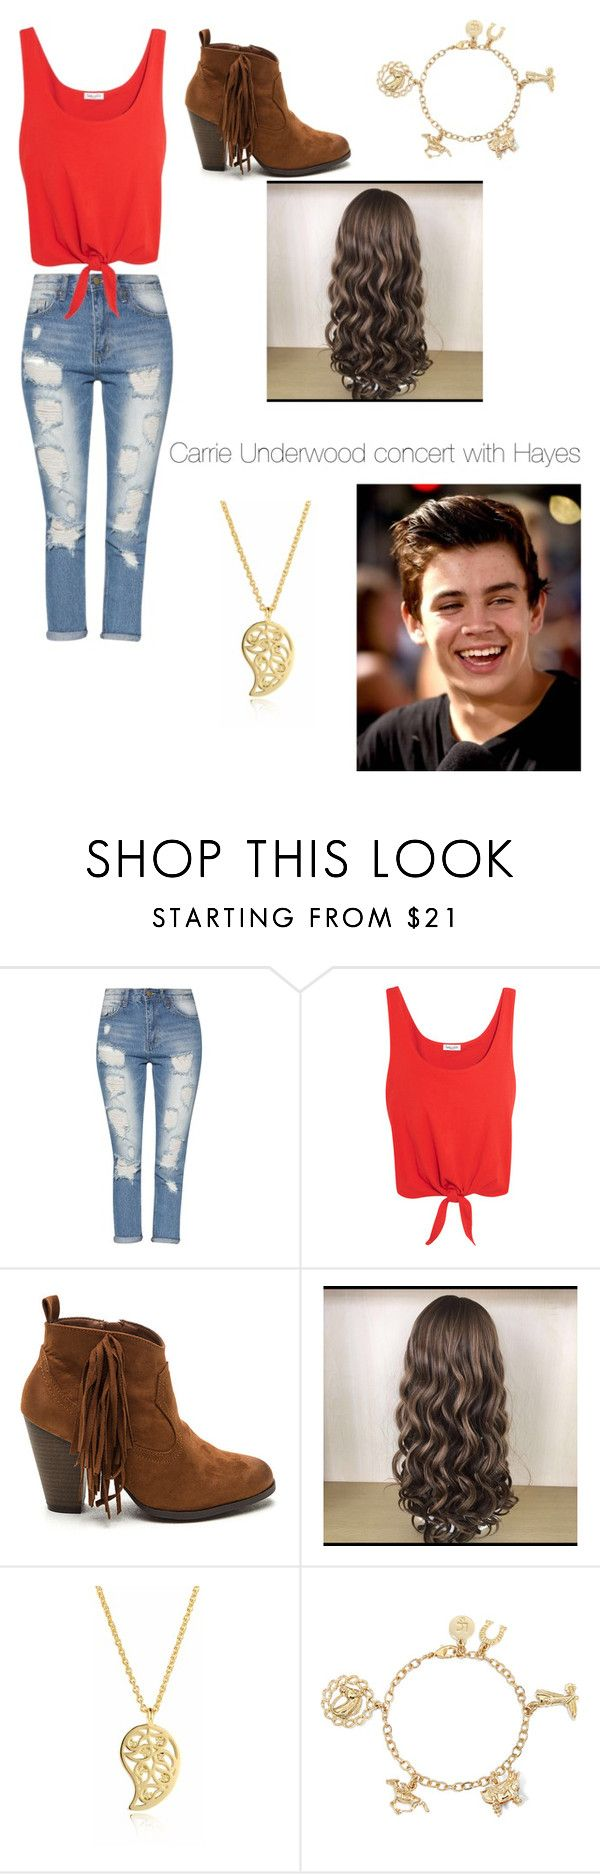 """""""Carrie underwood concert with Hayes"""" by kaitlynfashion15 on Polyvore featuring Splendid, Sonal Bhaskaran and Liz Claiborne"""